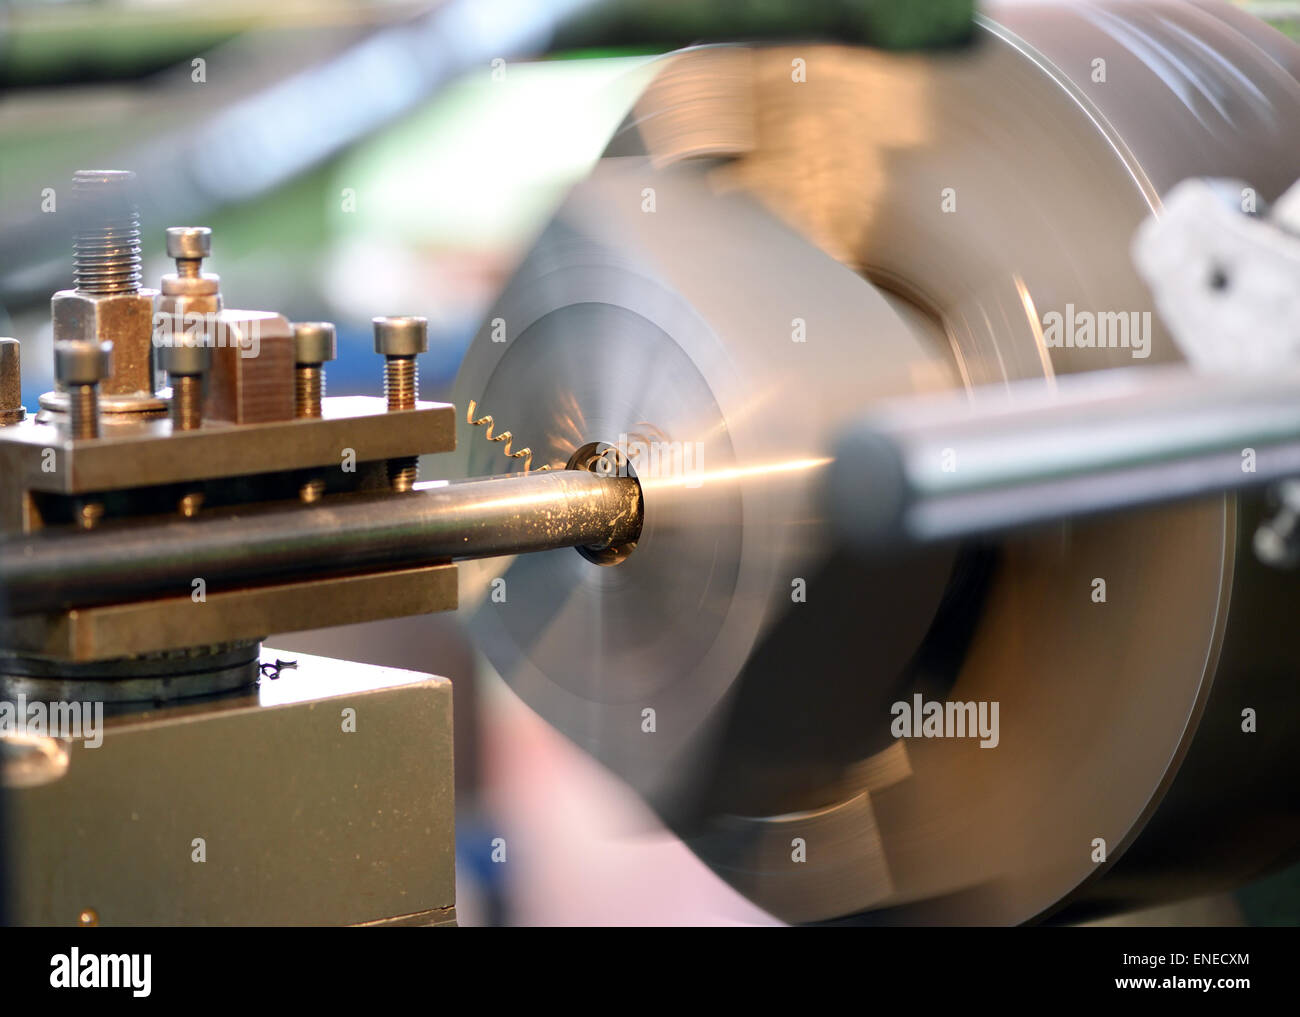 Close Up of Lathe in Operation with Focus on Spindle and Spinning Headstock and Gold Colored Shavings - Stock Image